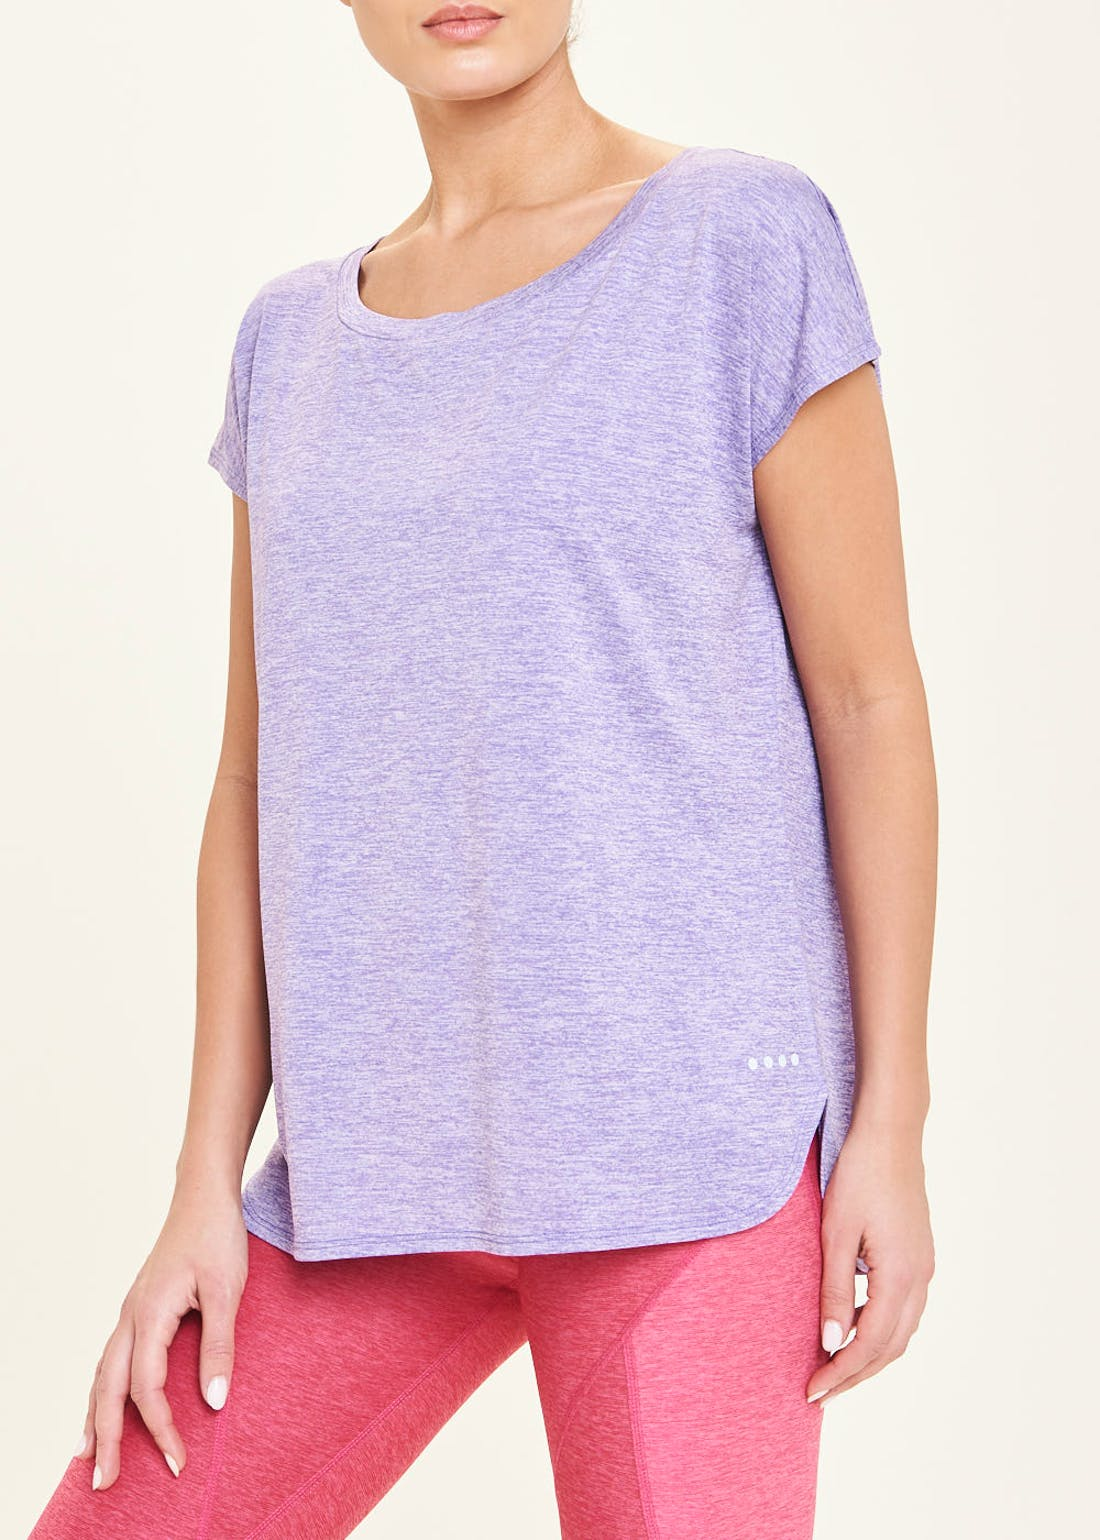 Souluxe Purple Slouch Gym T-Shirt